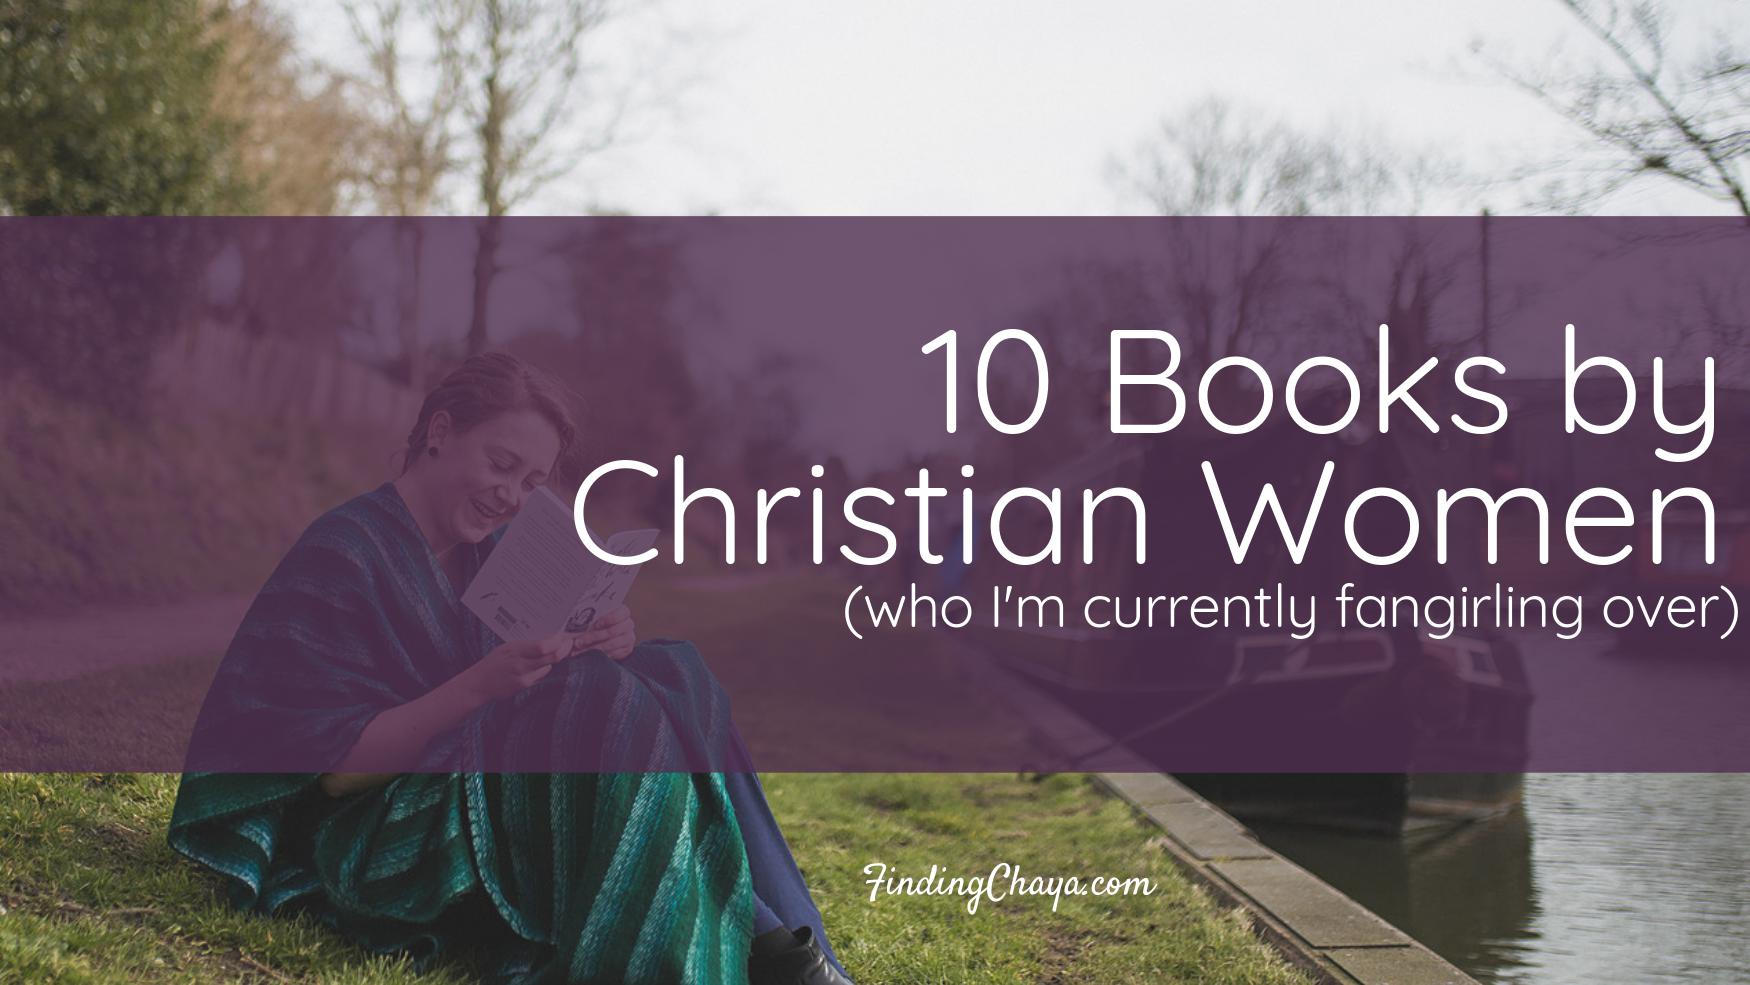 10 Books by Christian Women I Want to Read